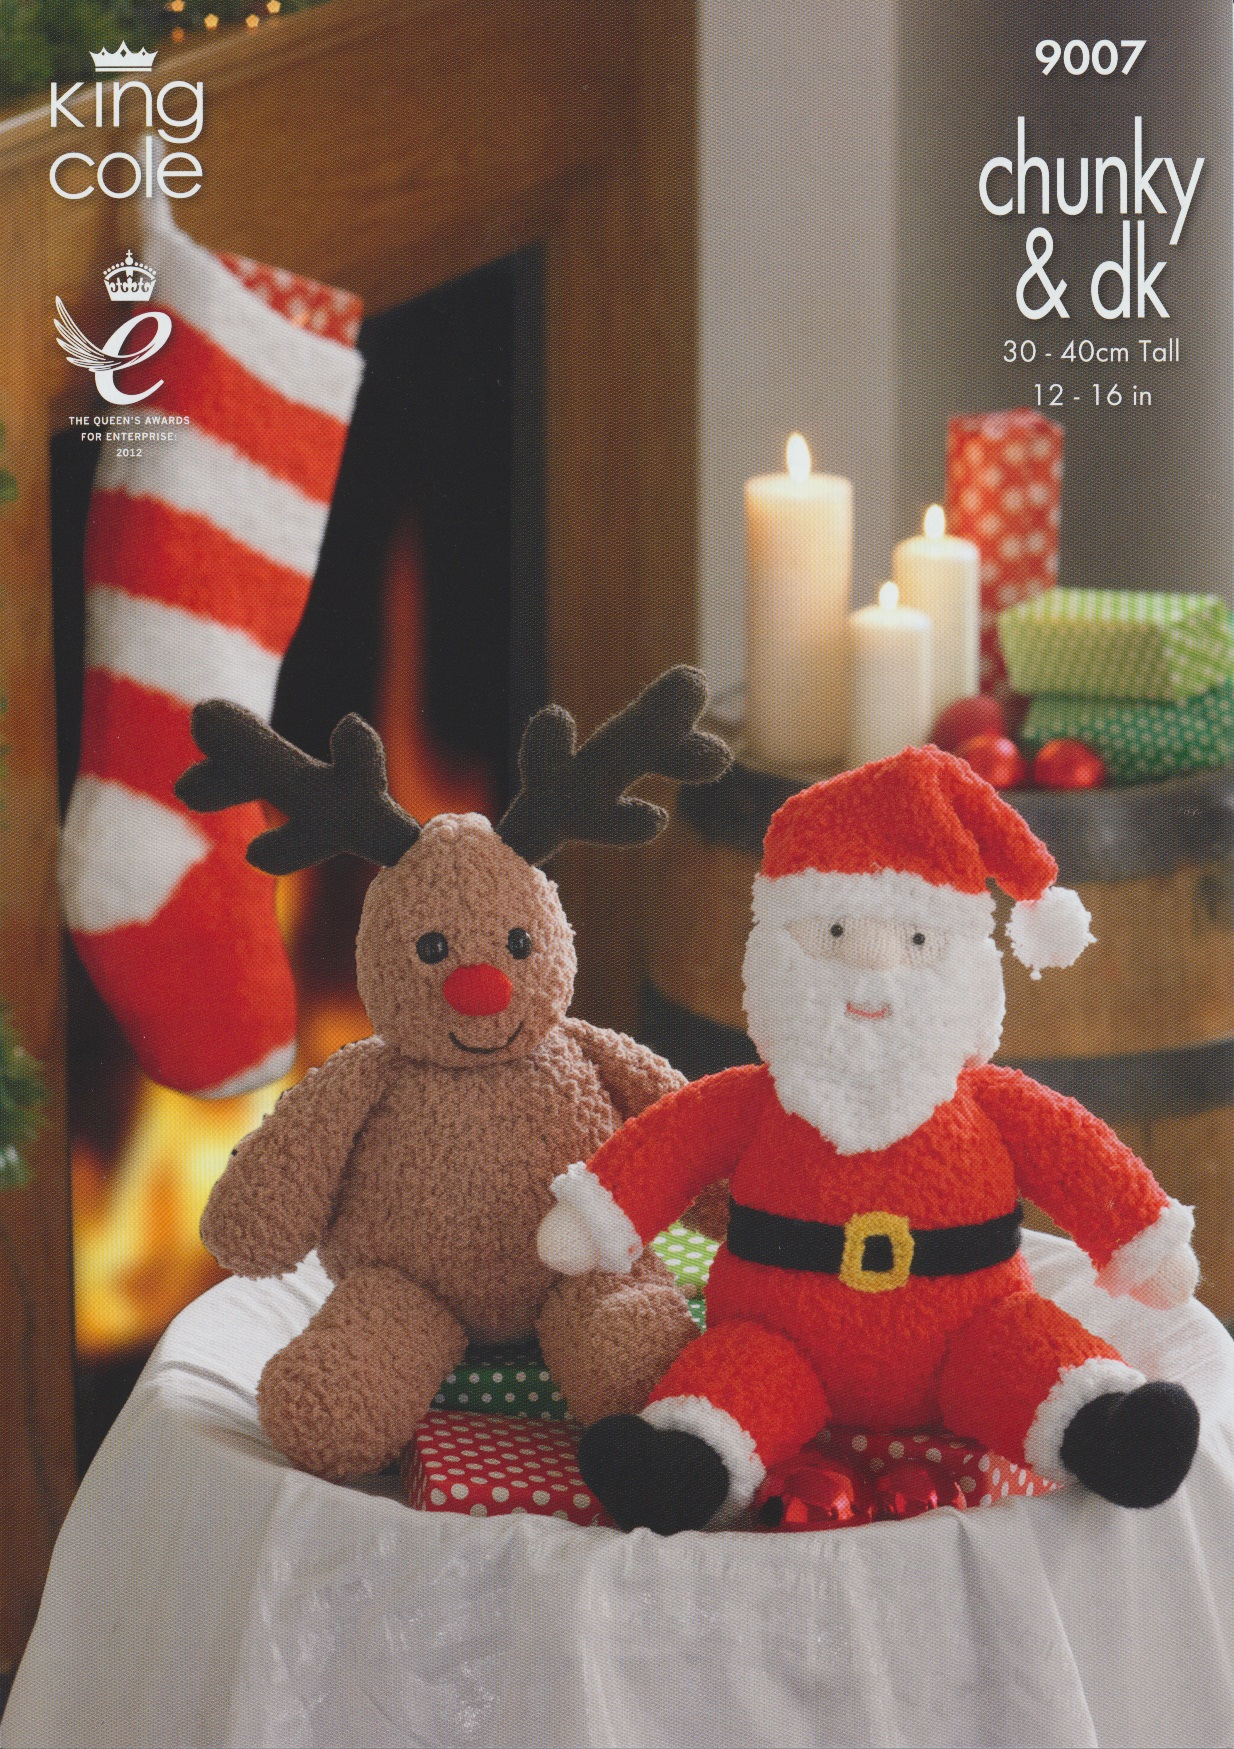 King Cole Snowman Knitting Pattern : DK Knitting Pattern King Cole Christmas Rudolph Snowman Santa & Stockings...